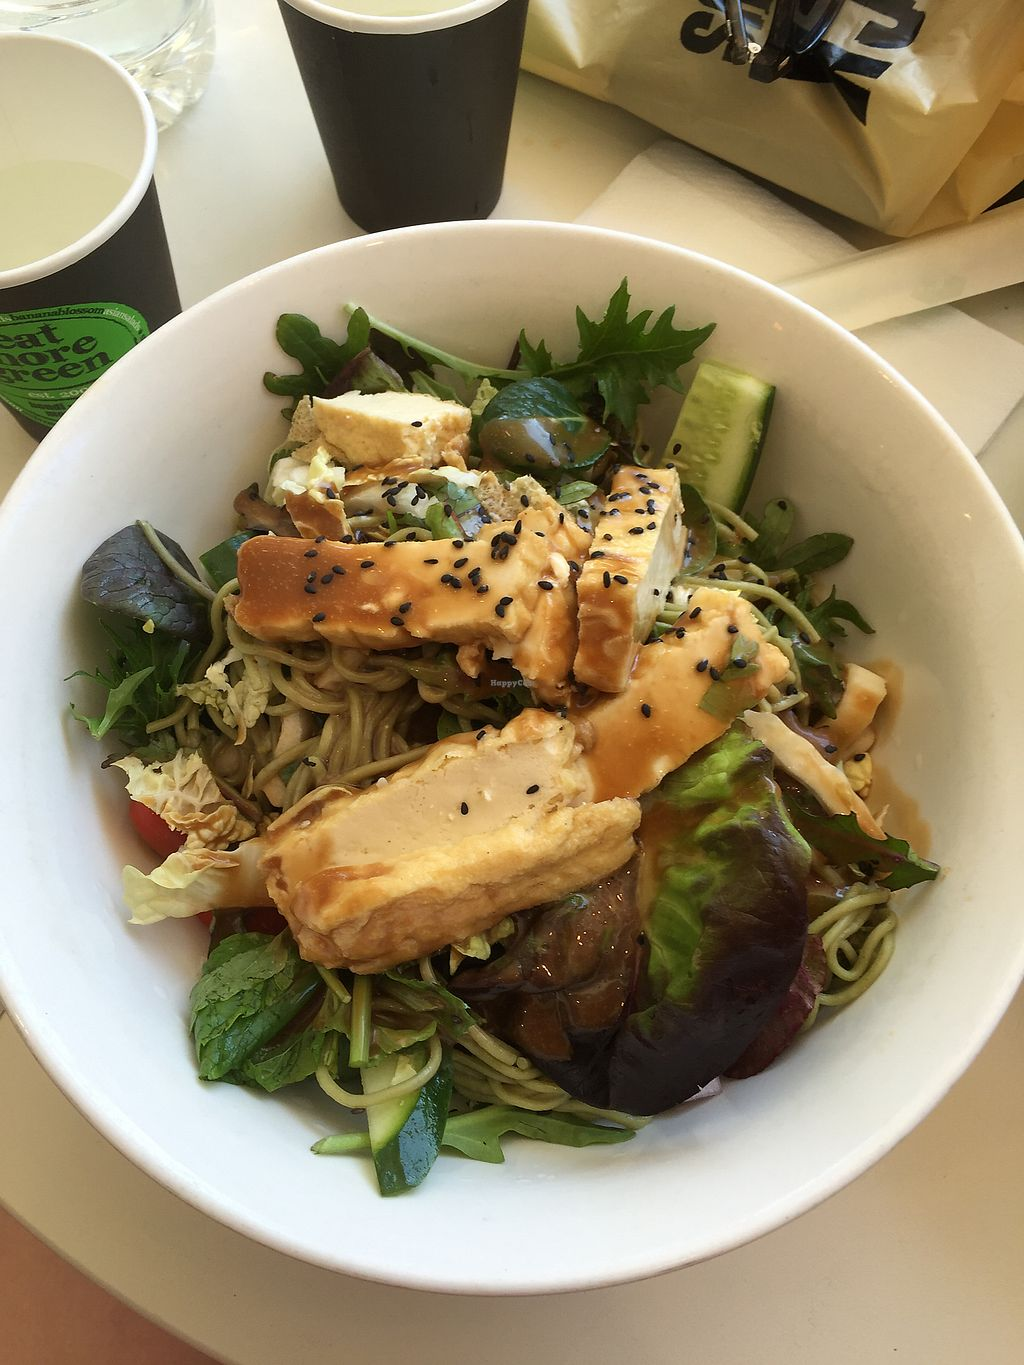 """Photo of Banana Blossom  by <a href=""""/members/profile/ellealexa"""">ellealexa</a> <br/>The Tokyo Classic with Tofu <br/> April 5, 2018  - <a href='/contact/abuse/image/73059/381183'>Report</a>"""